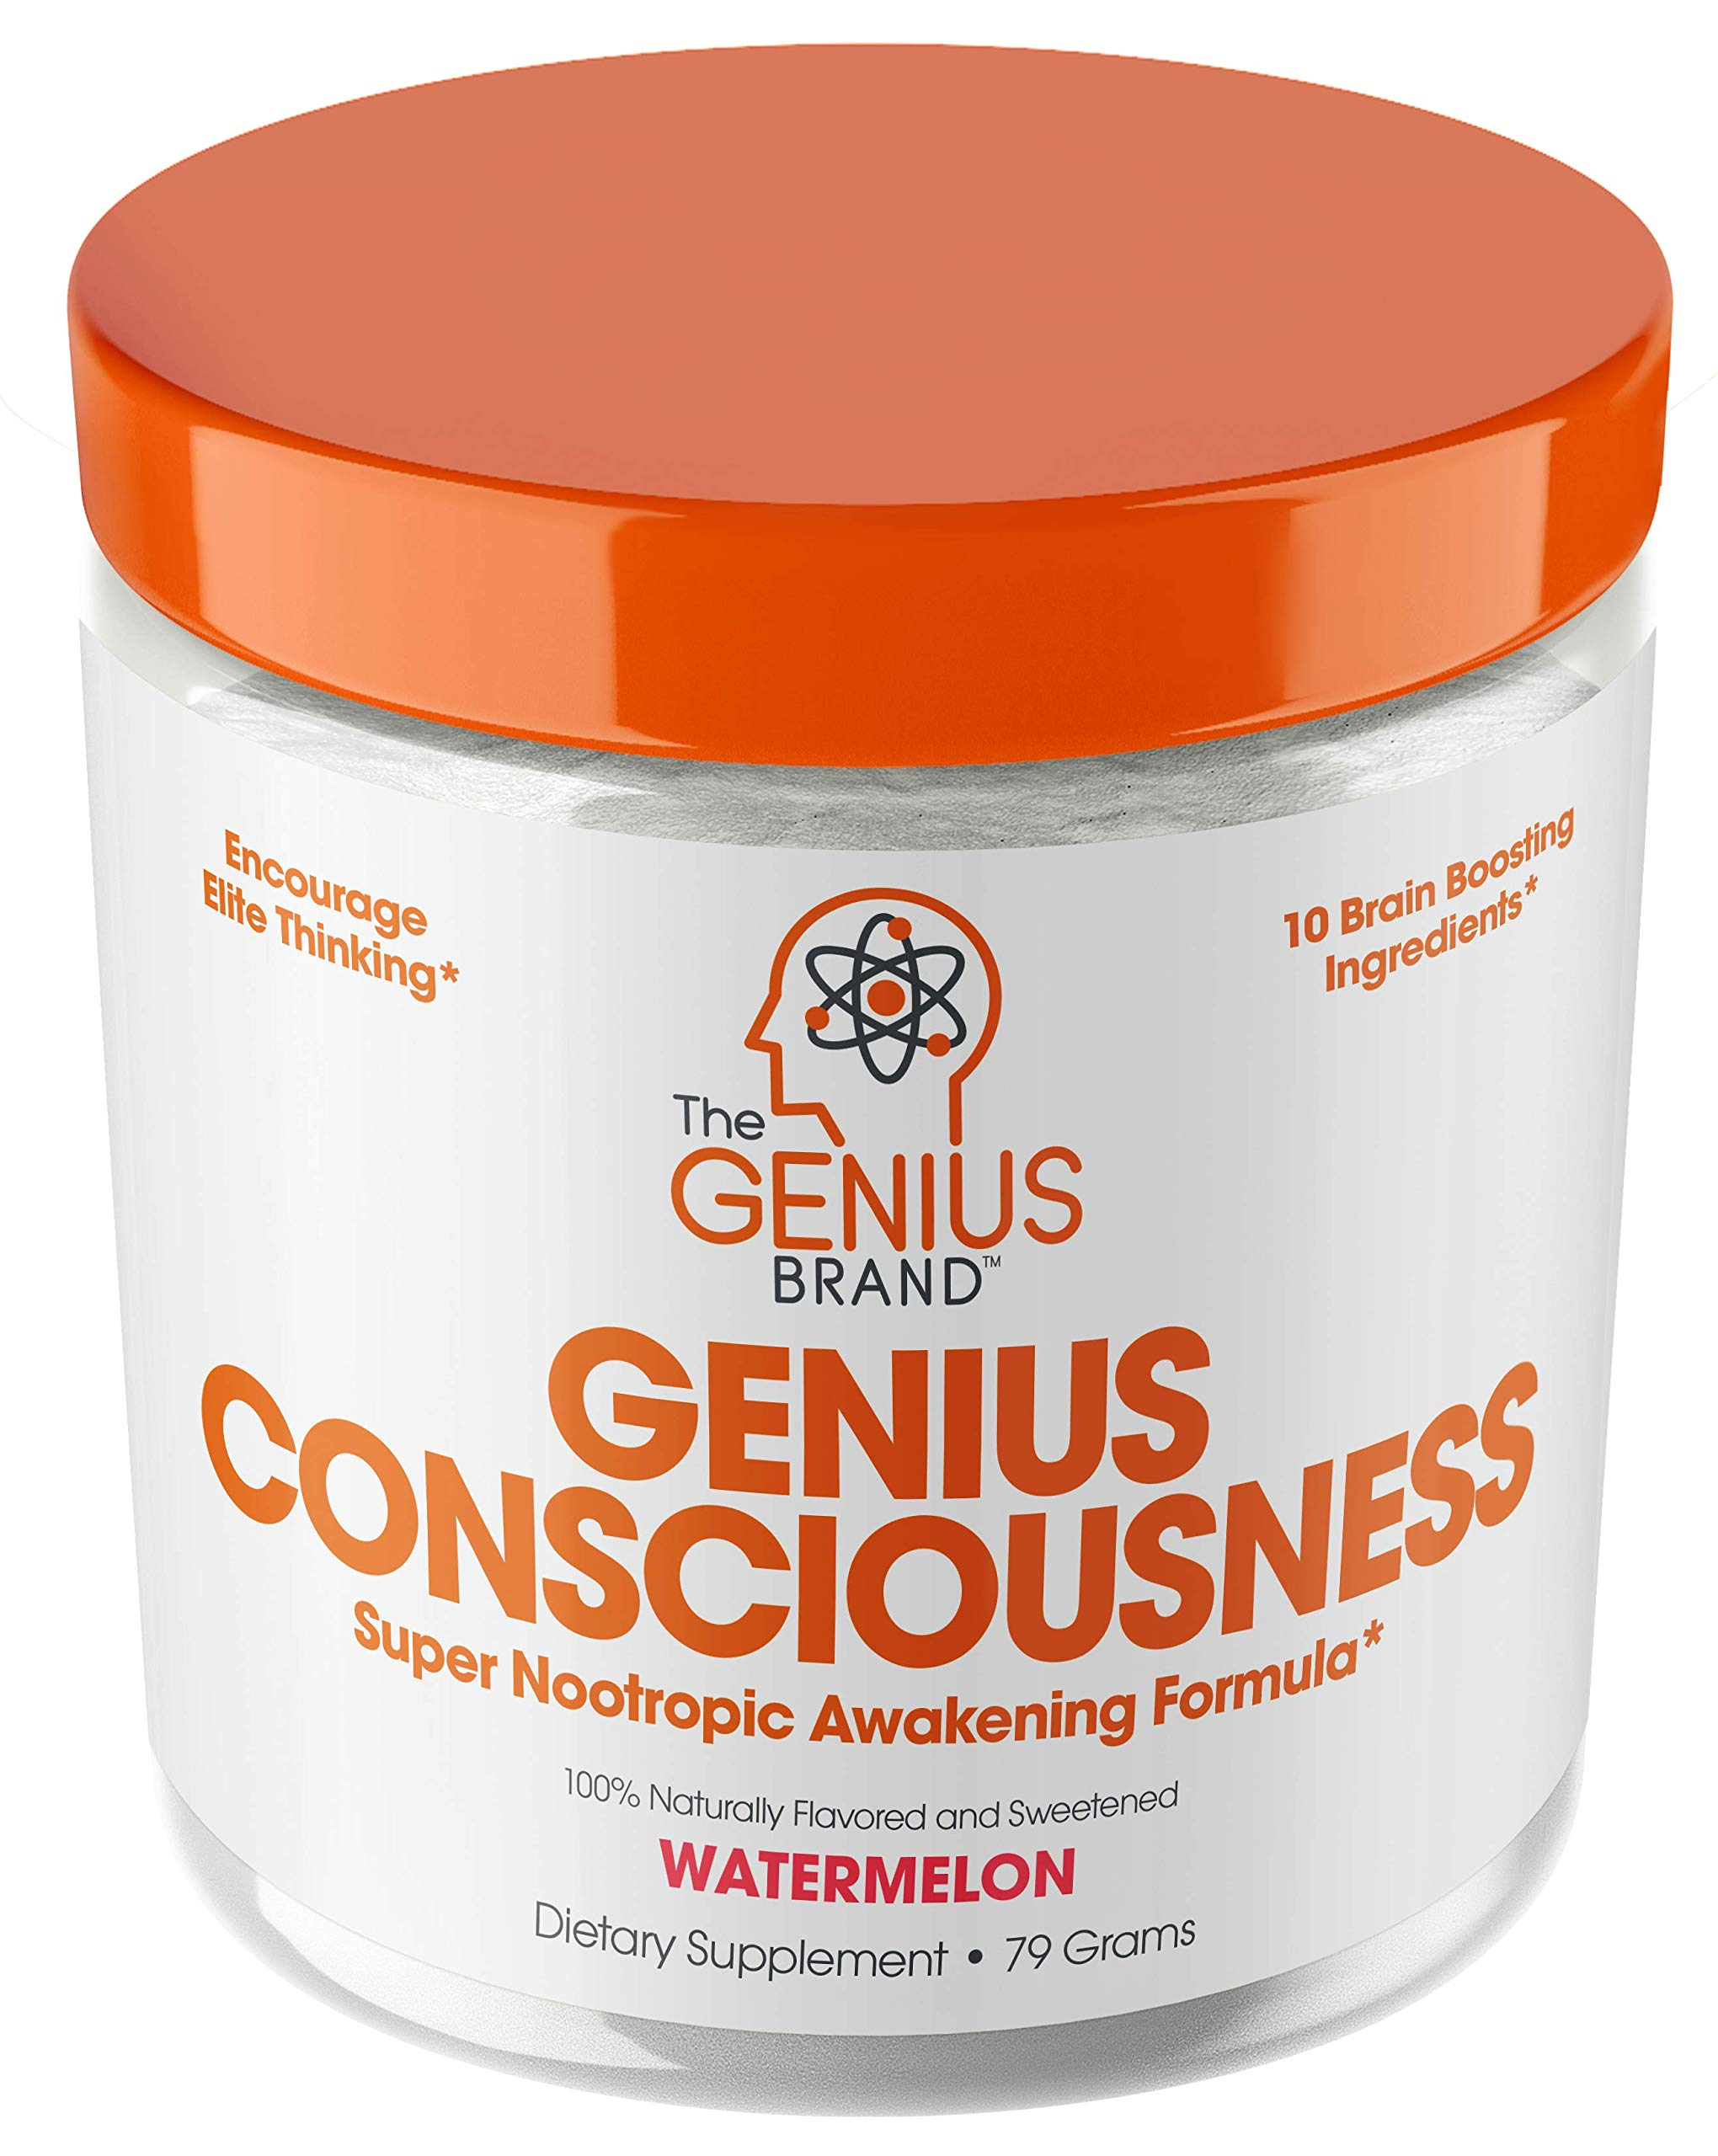 Genius Consciousness - Super Nootropic Brain Booster Supplement - Enhance Focus, Boost Concentration & Improve Memory | Mind Enhancement with Alpha GPC & Lions Mane Mushroom for Neuro Energy & IQ by The Genius Brand